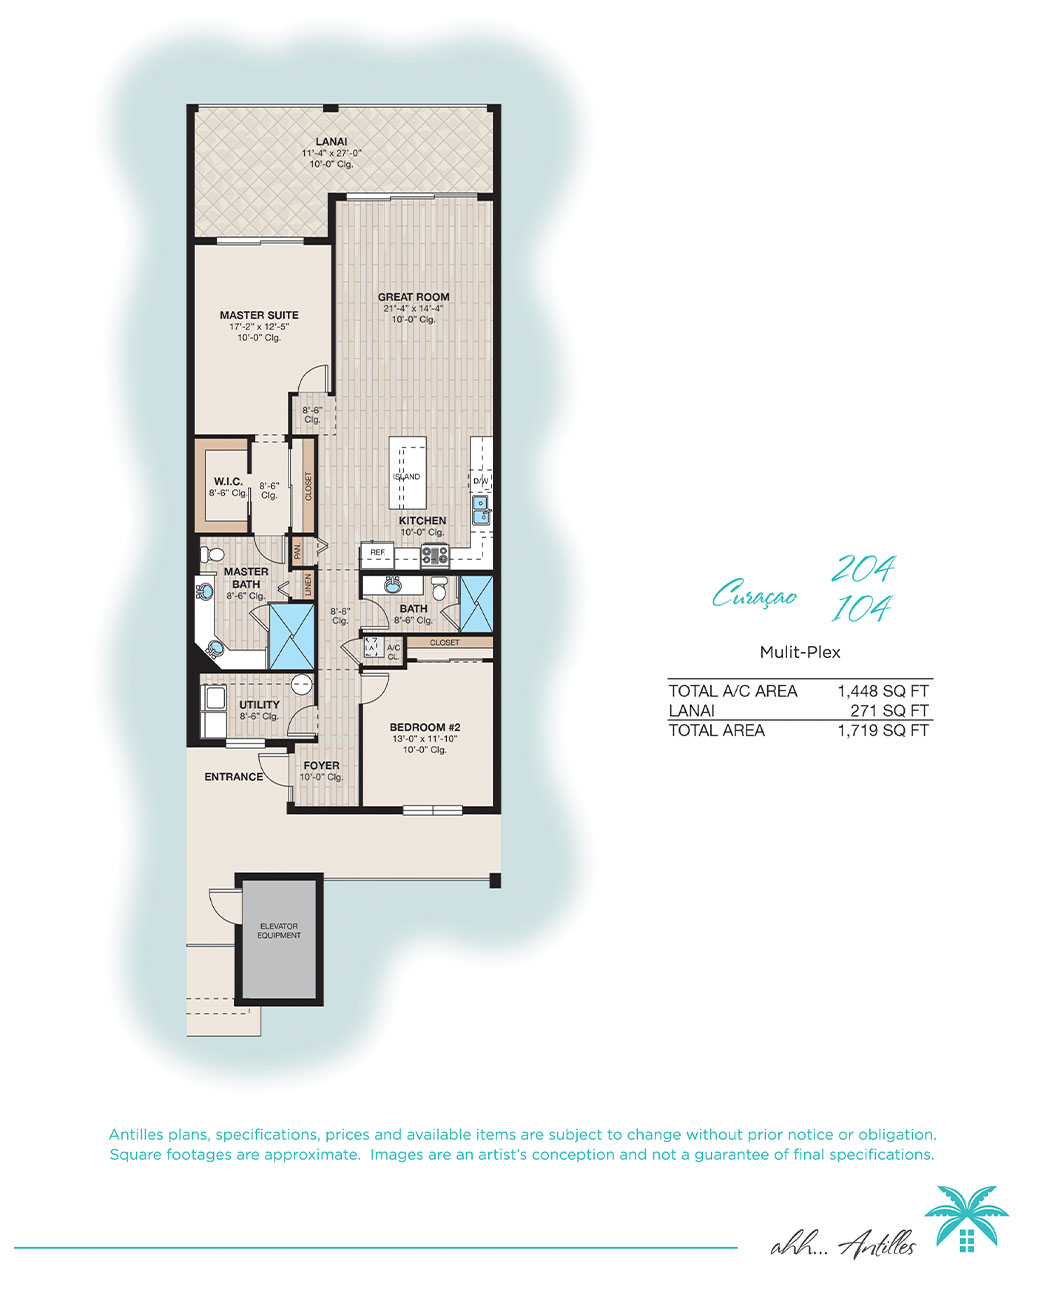 Multi-Plex Curacao 104 | Antilles of Naples, Florida - West Indies Styled Residential Resort